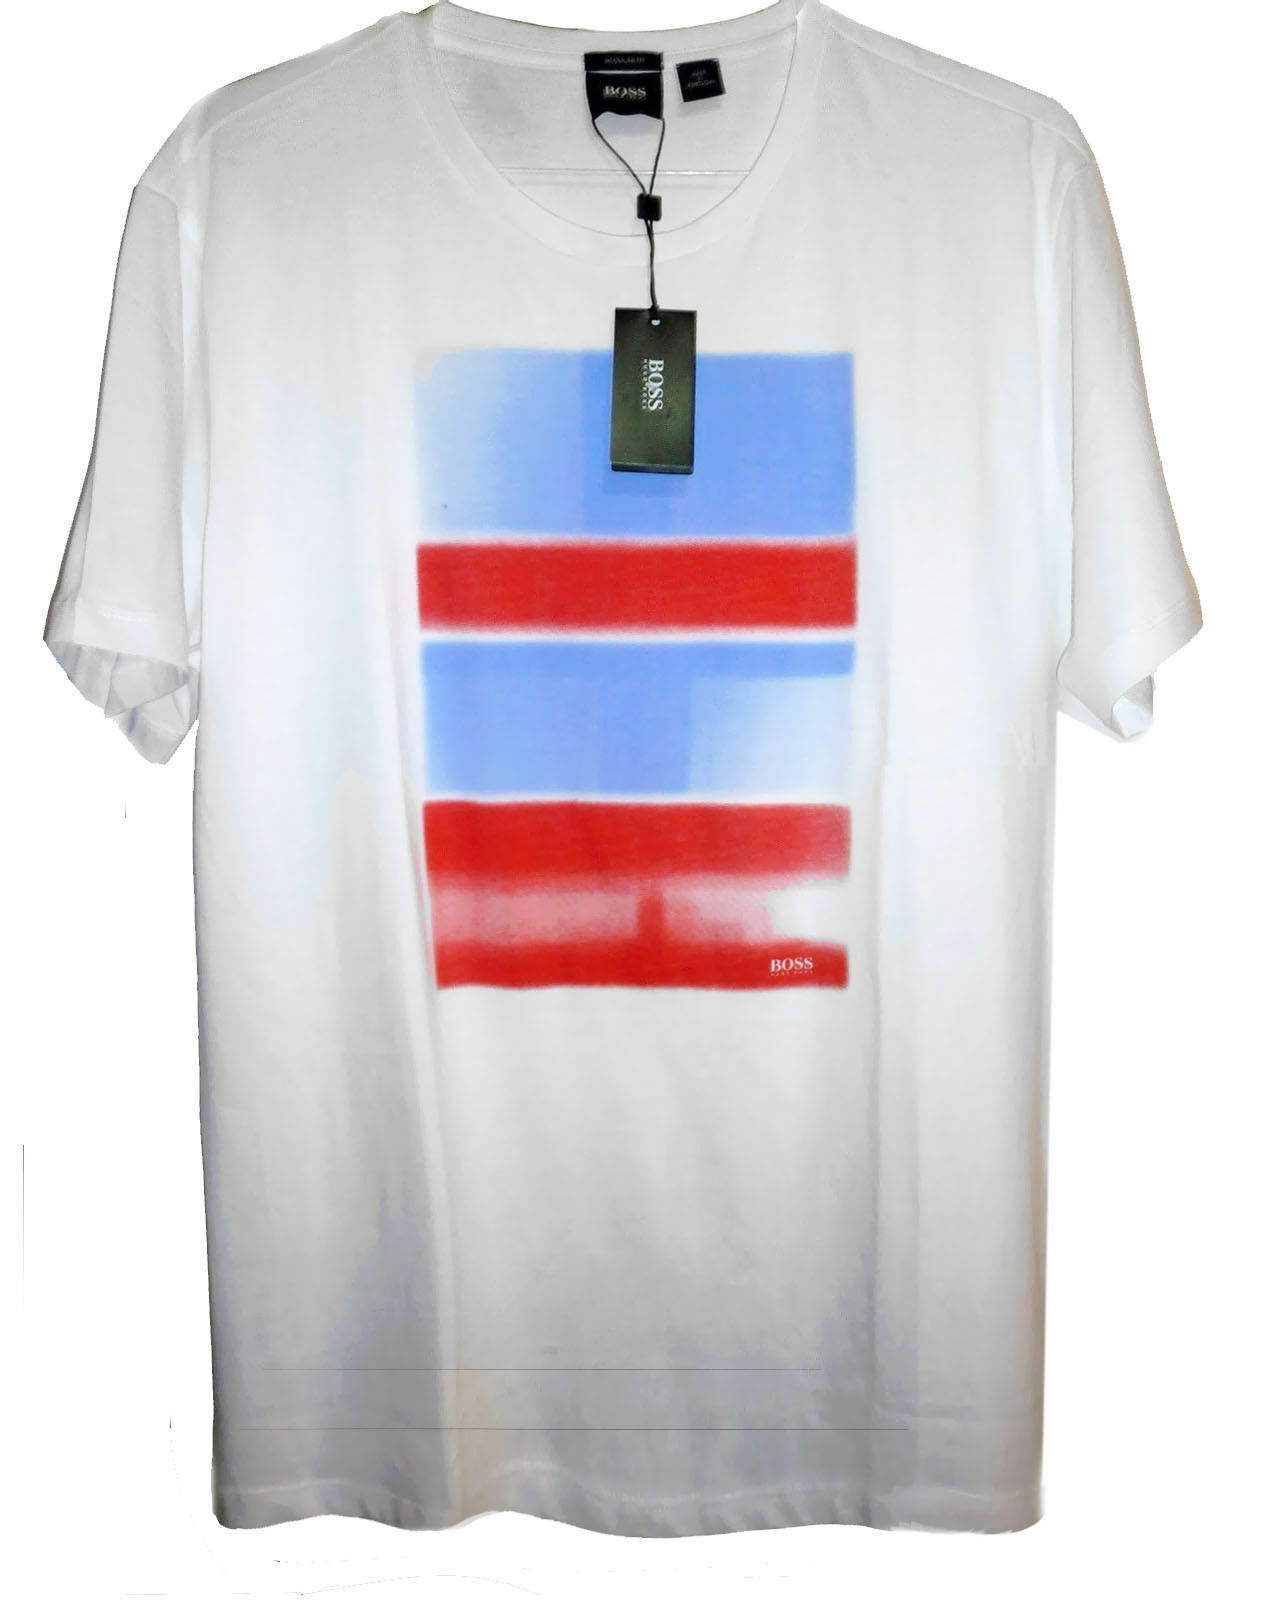 Hugo Boss Red White bluee Graphic Cotton Men's Regular Fit T-Shirt Size 2XL NEW